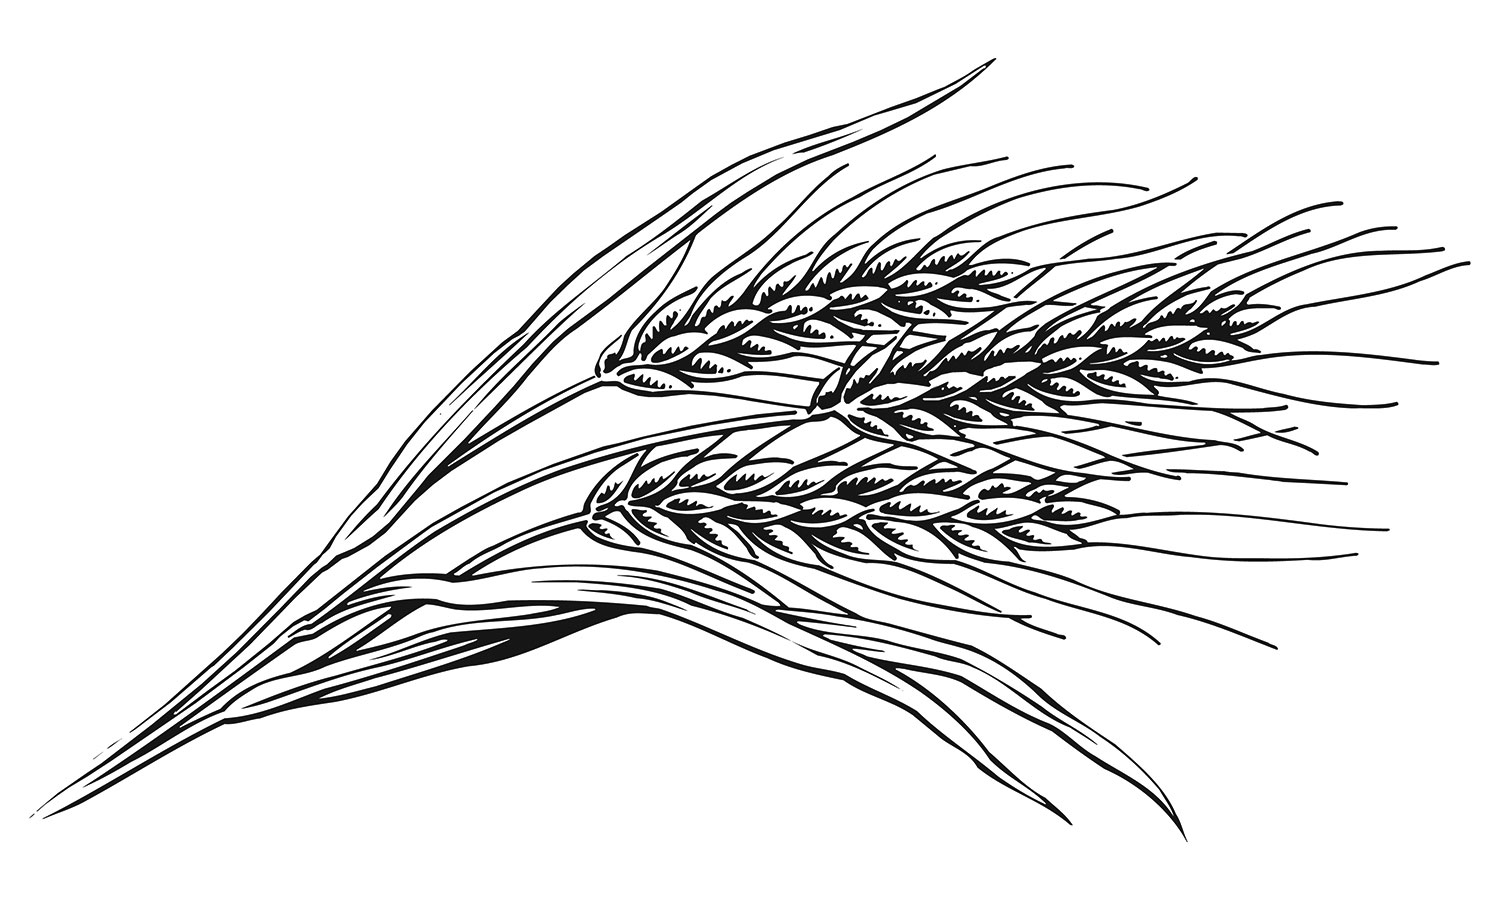 Keith Ward detailed line Illustration of Wheat on the stalk